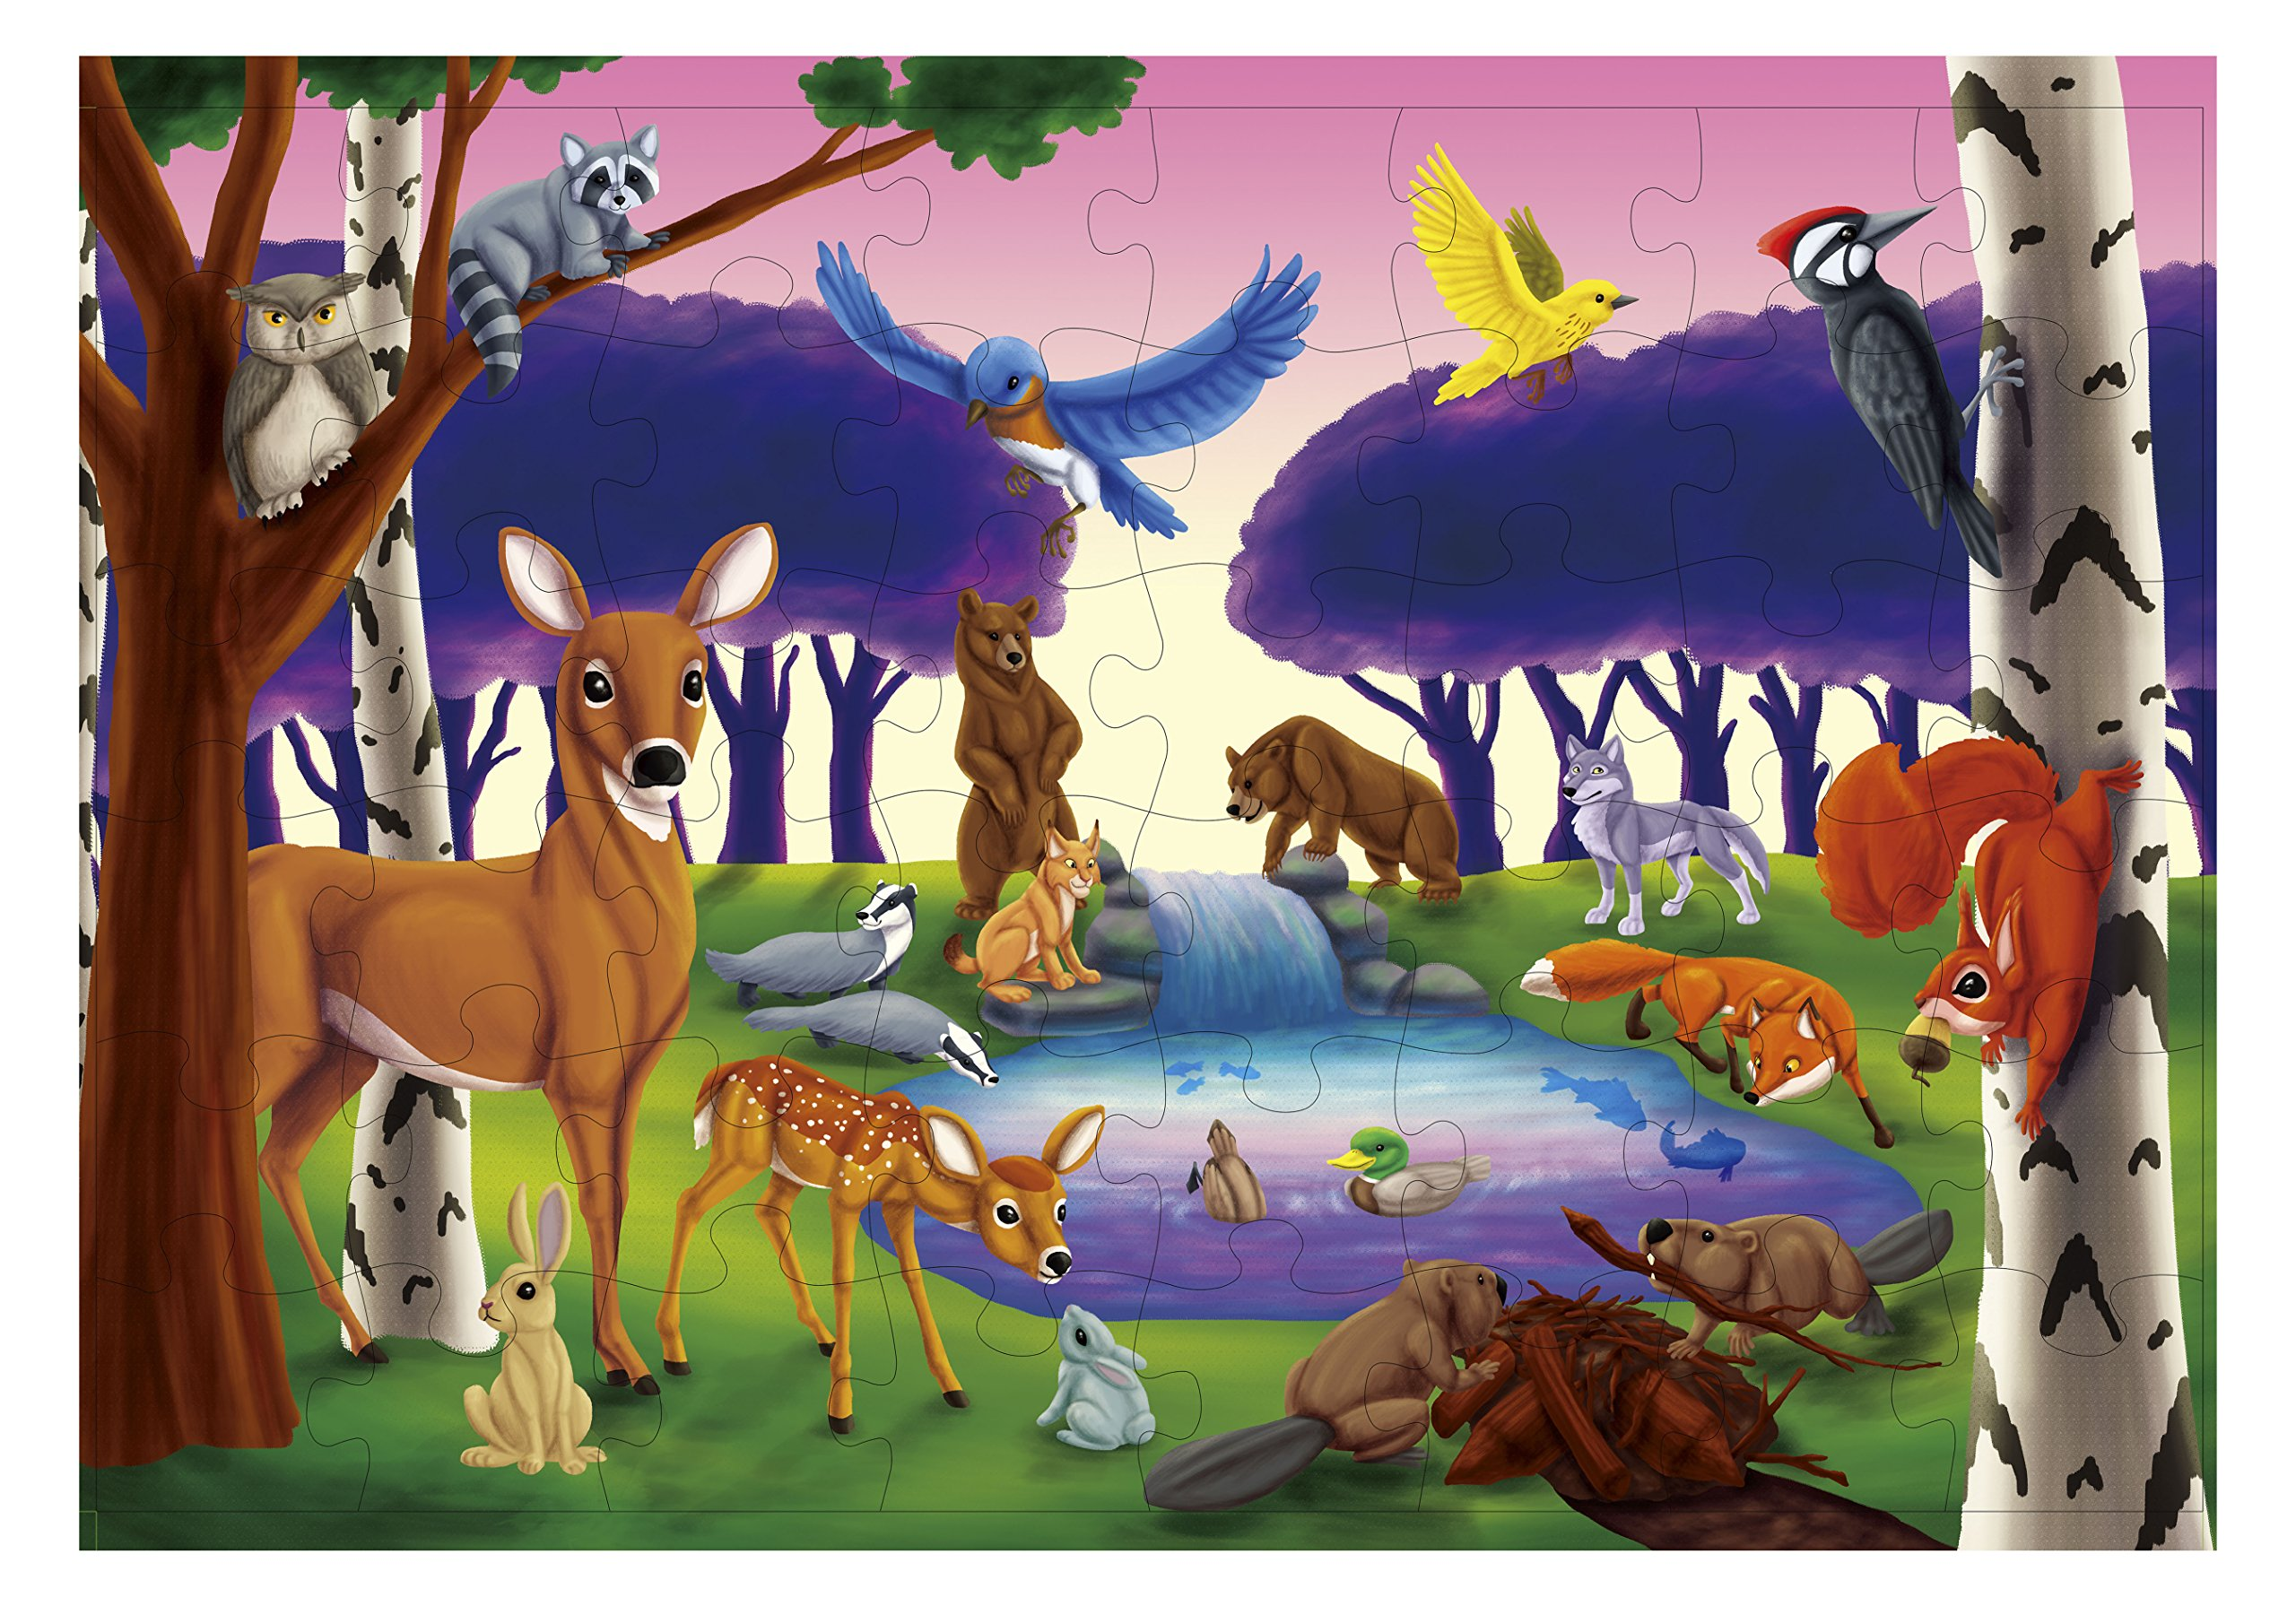 Floor Puzzles for Kids - 48-Piece Giant Floor Puzzle, Woodland Animals Jumbo Jigsaw Puzzles for Toddlers Preschool, Toy Puzzles for Kids Ages 3-5, 2 x 3 Feet